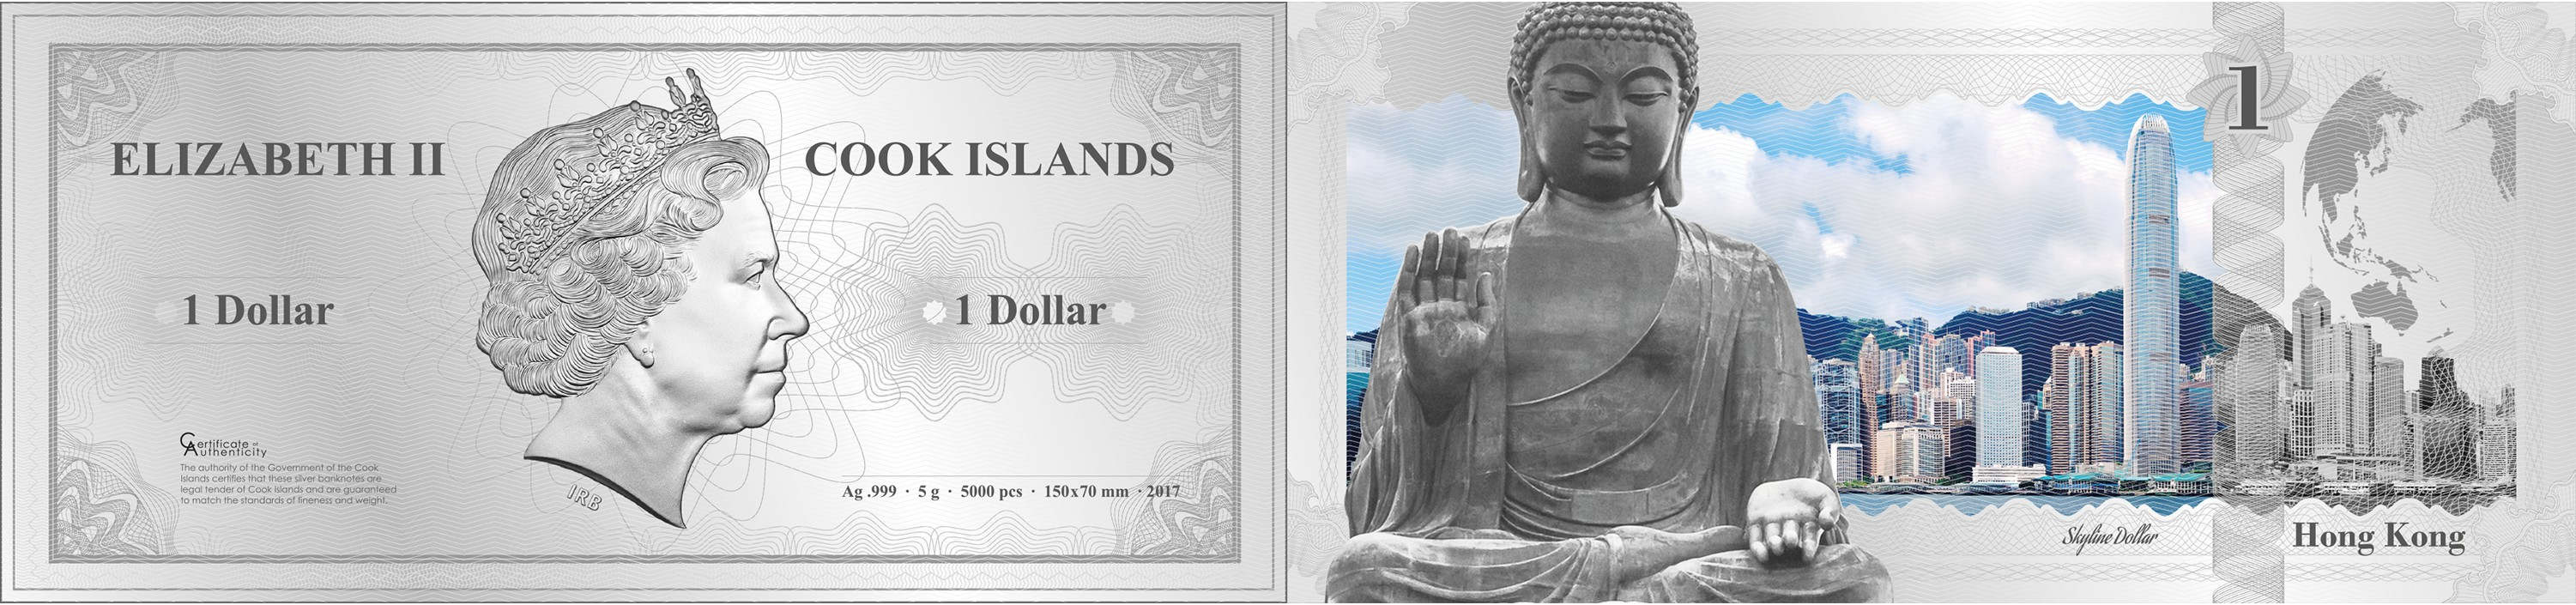 cook isl 2017 skyline dollar hong kong